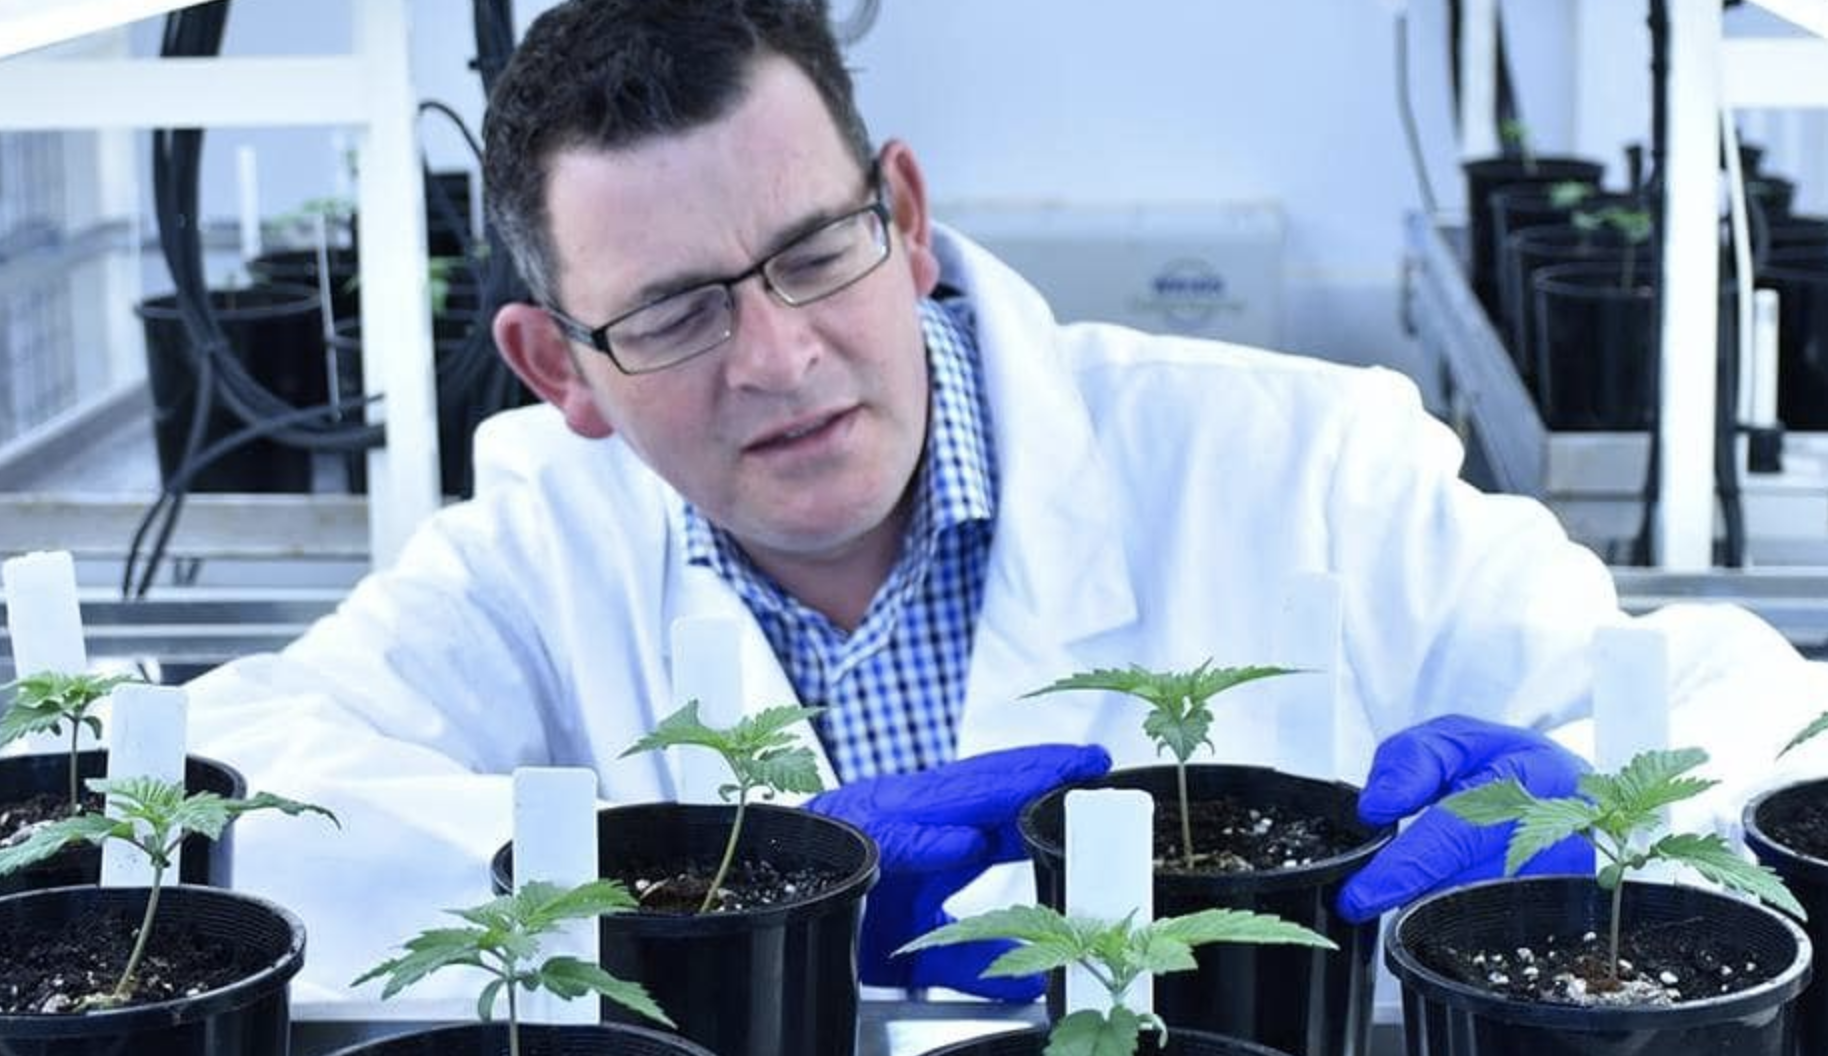 The Victorian government has set the ambitious goal for Victoria to supply half of Australia's medicinal cannabis by 2028.